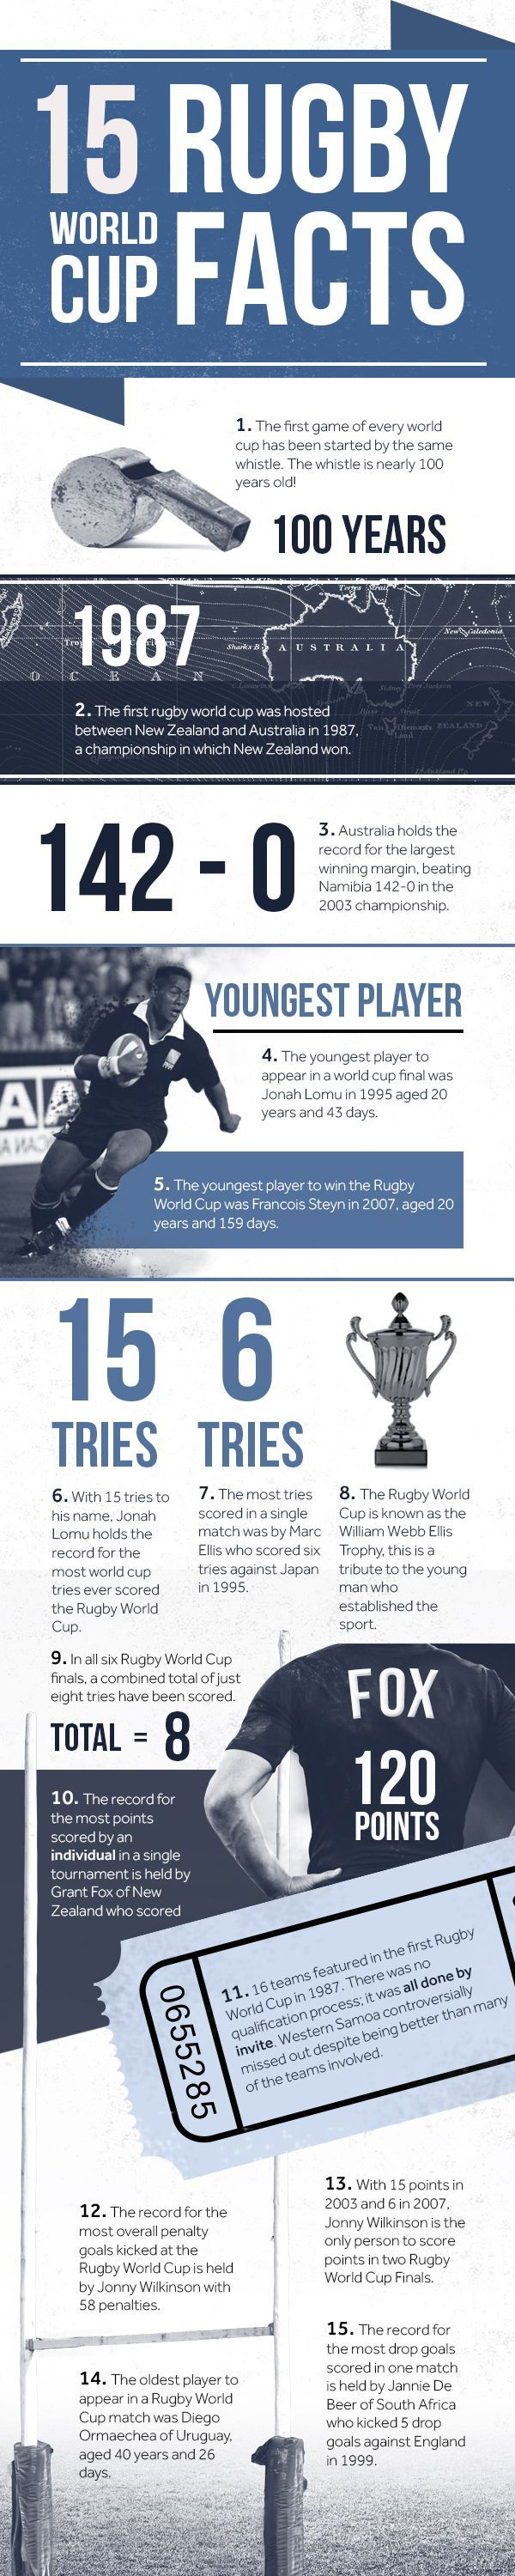 15 Rugby World Cup Facts You Don't Know